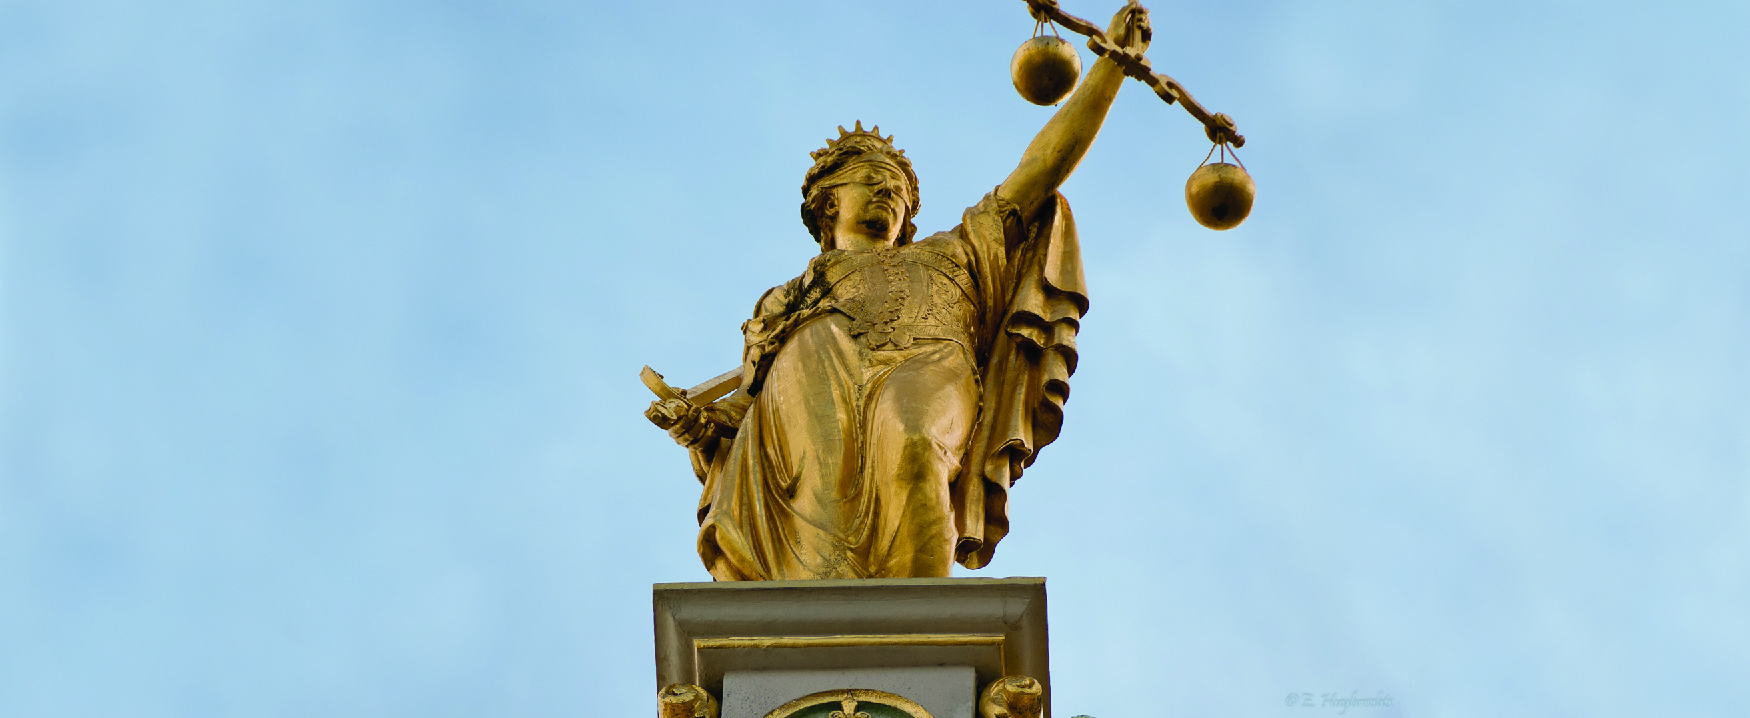 A photo of a statue depicting the figure of Justice.